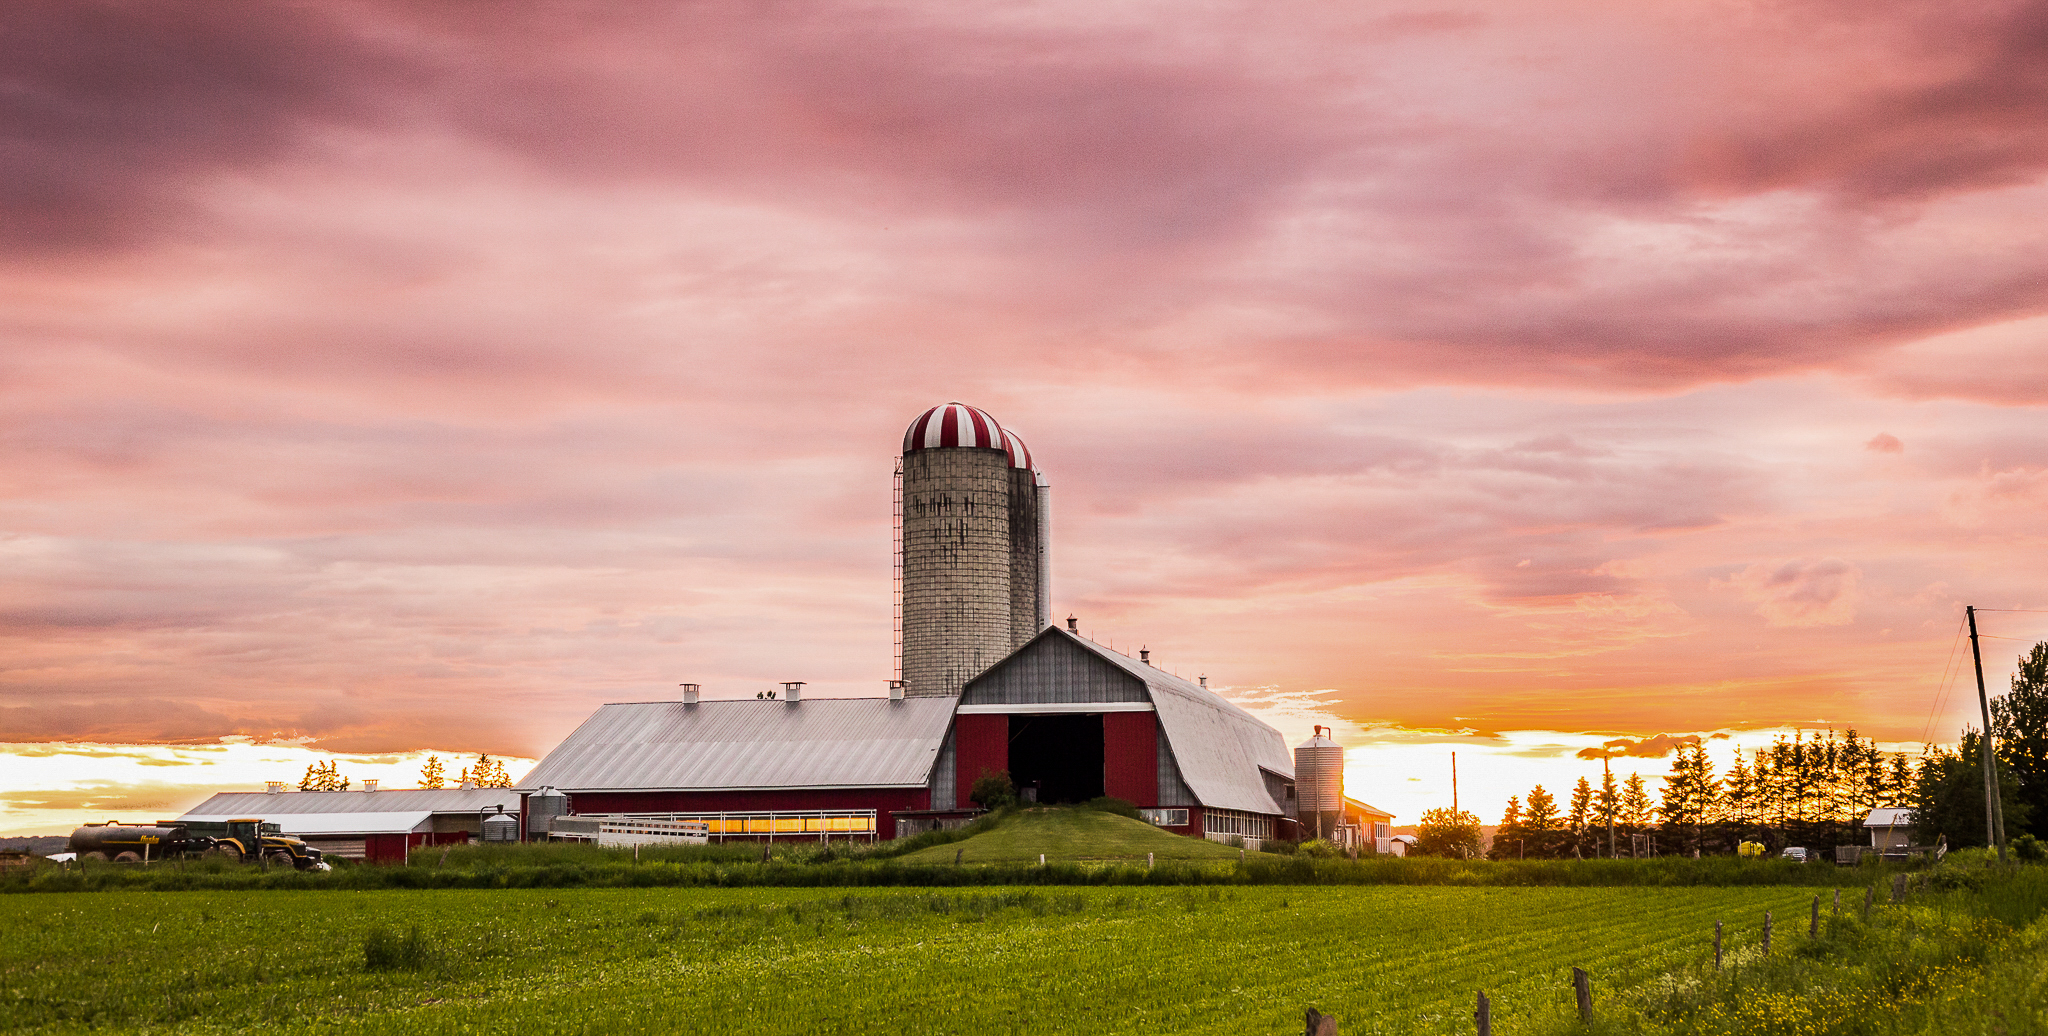 Image of a Dairy farm at sunset in Moncton NB